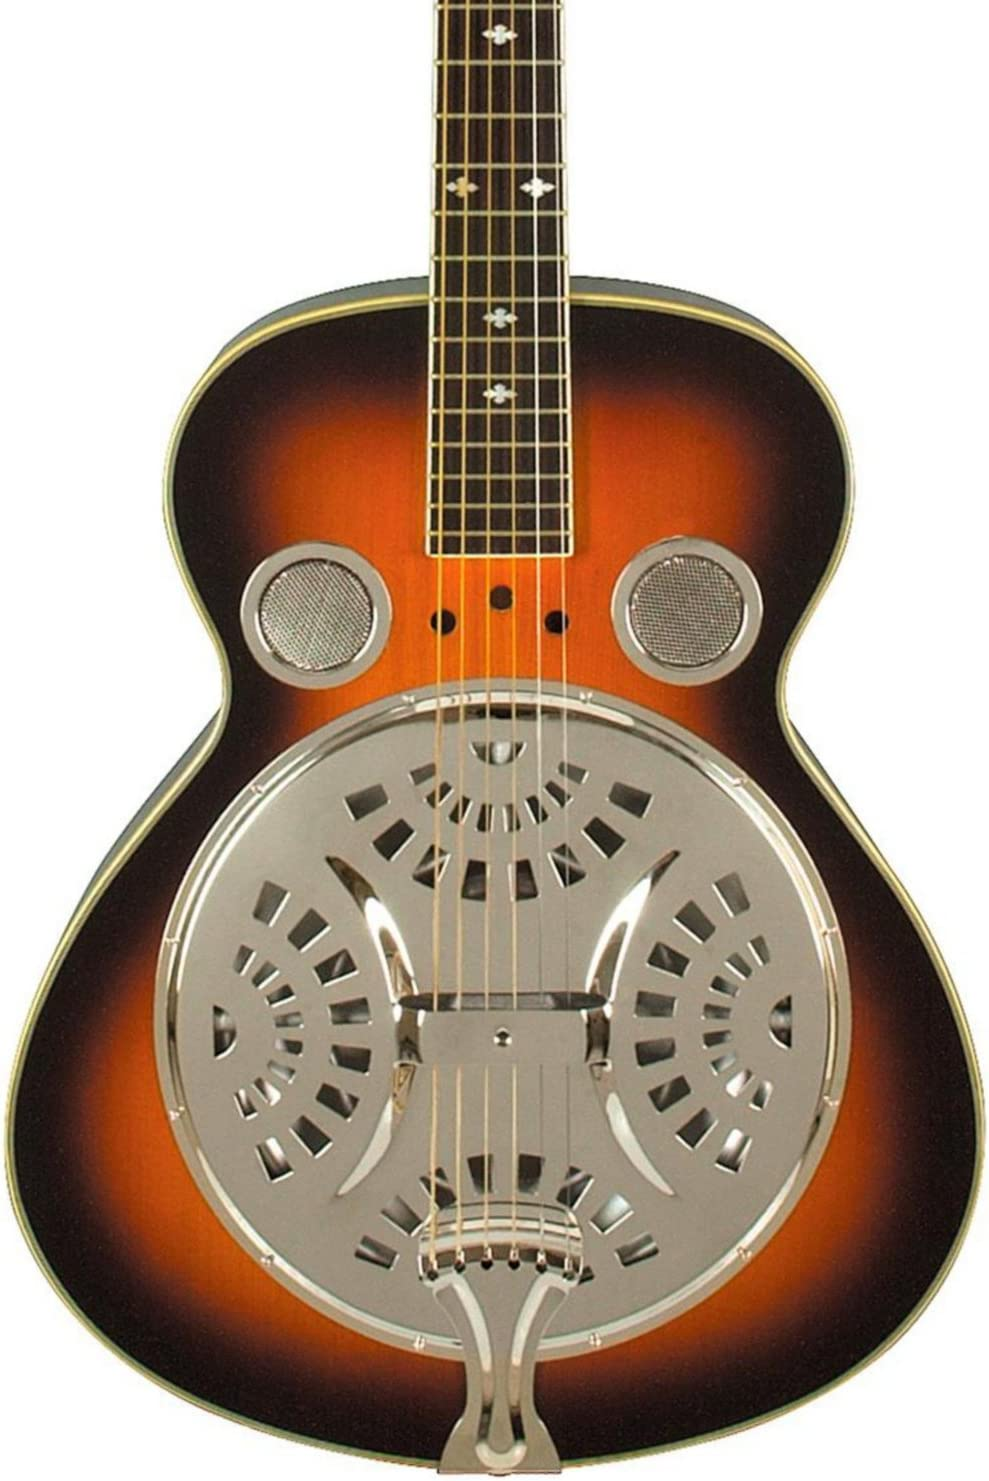 Rogue Classic Spider Resonator Sunburst Roundneck